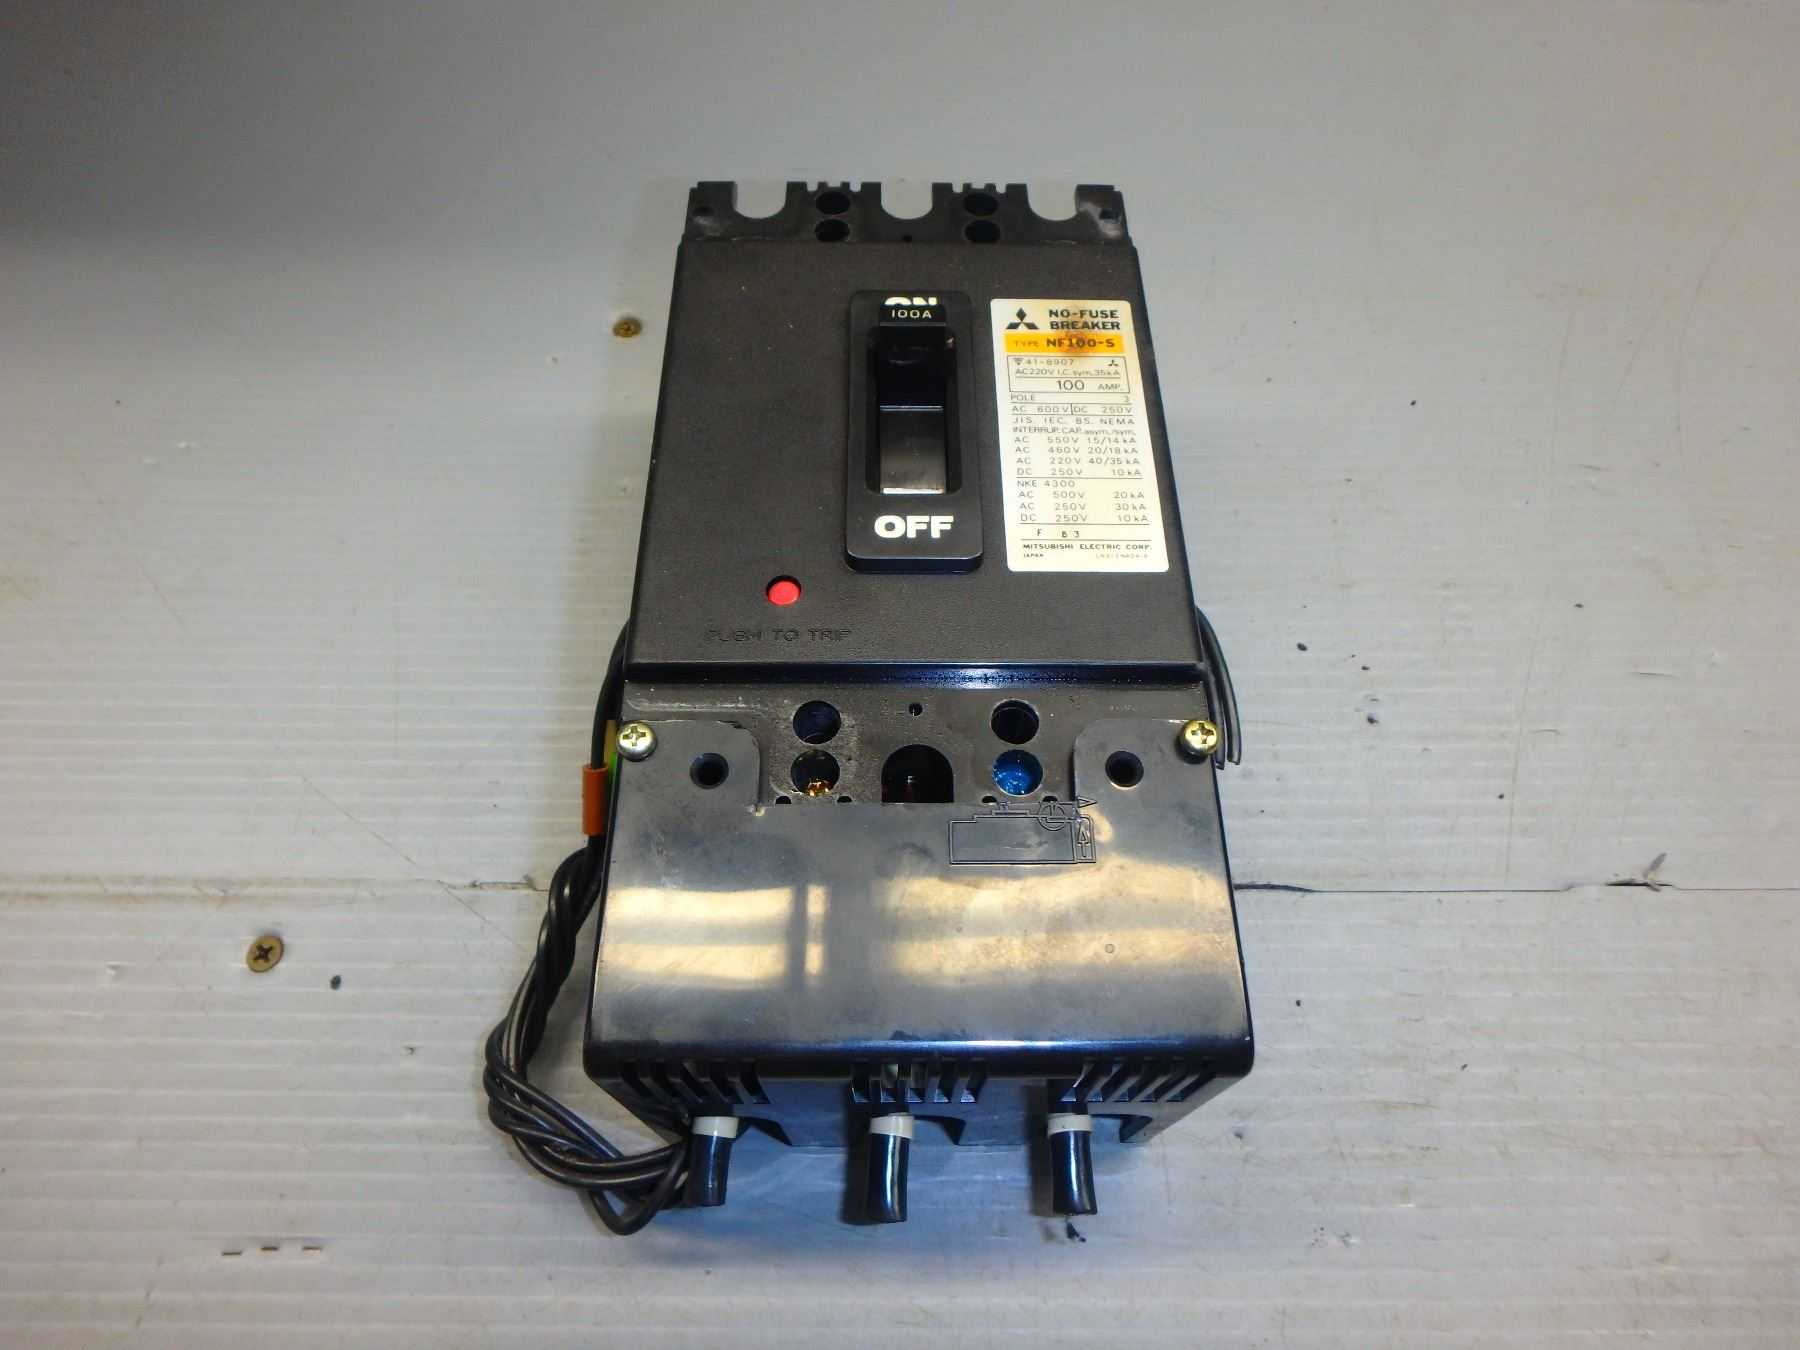 No Fuse Breaker Mitsubishi Car Cs 2p 5a Circuit 5 Amp Nf30 Ebay Source Nf100 S